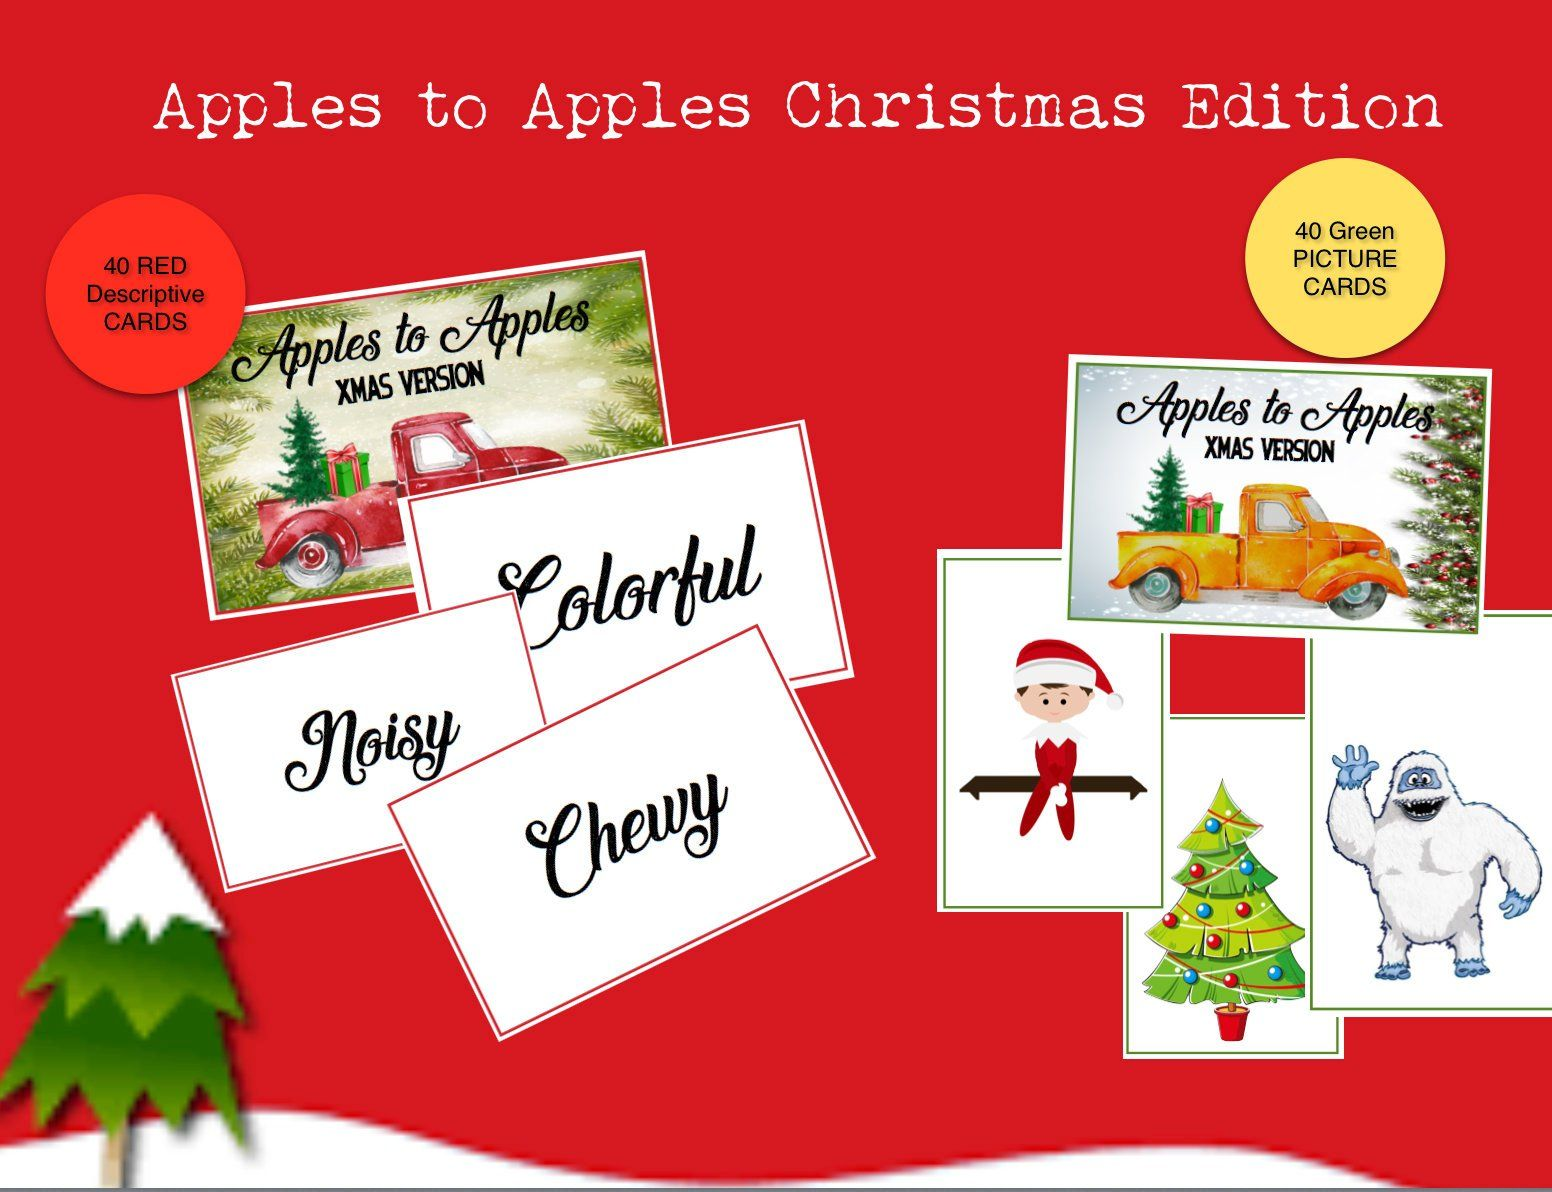 photograph regarding Apples to Apples Cards Printable called Apples toward Apples Xmas Model! Printable Playing cards toward perform